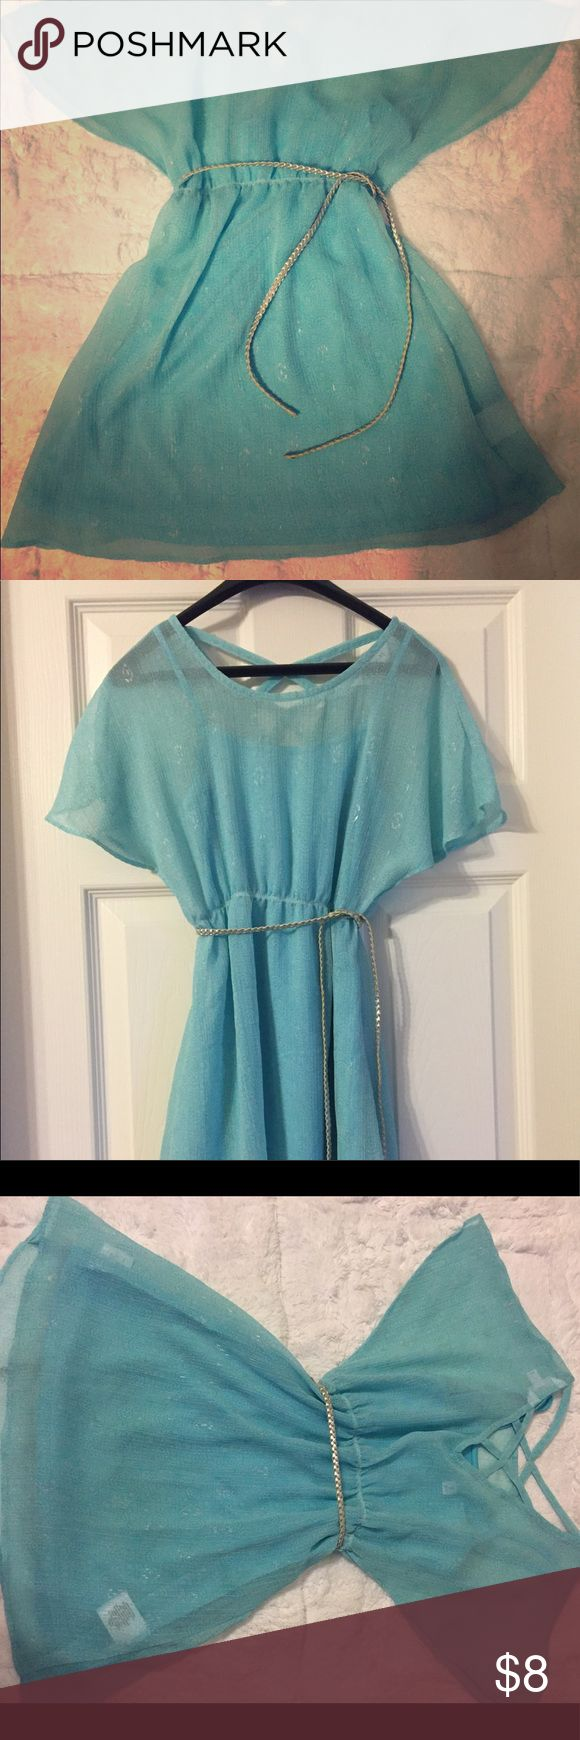 Girls Sally Miller dress Girls size 8 Sally Miller dress. Light Turquoise with braided silver belt. Used, in excellent condition Sally Miller Dresses Casual